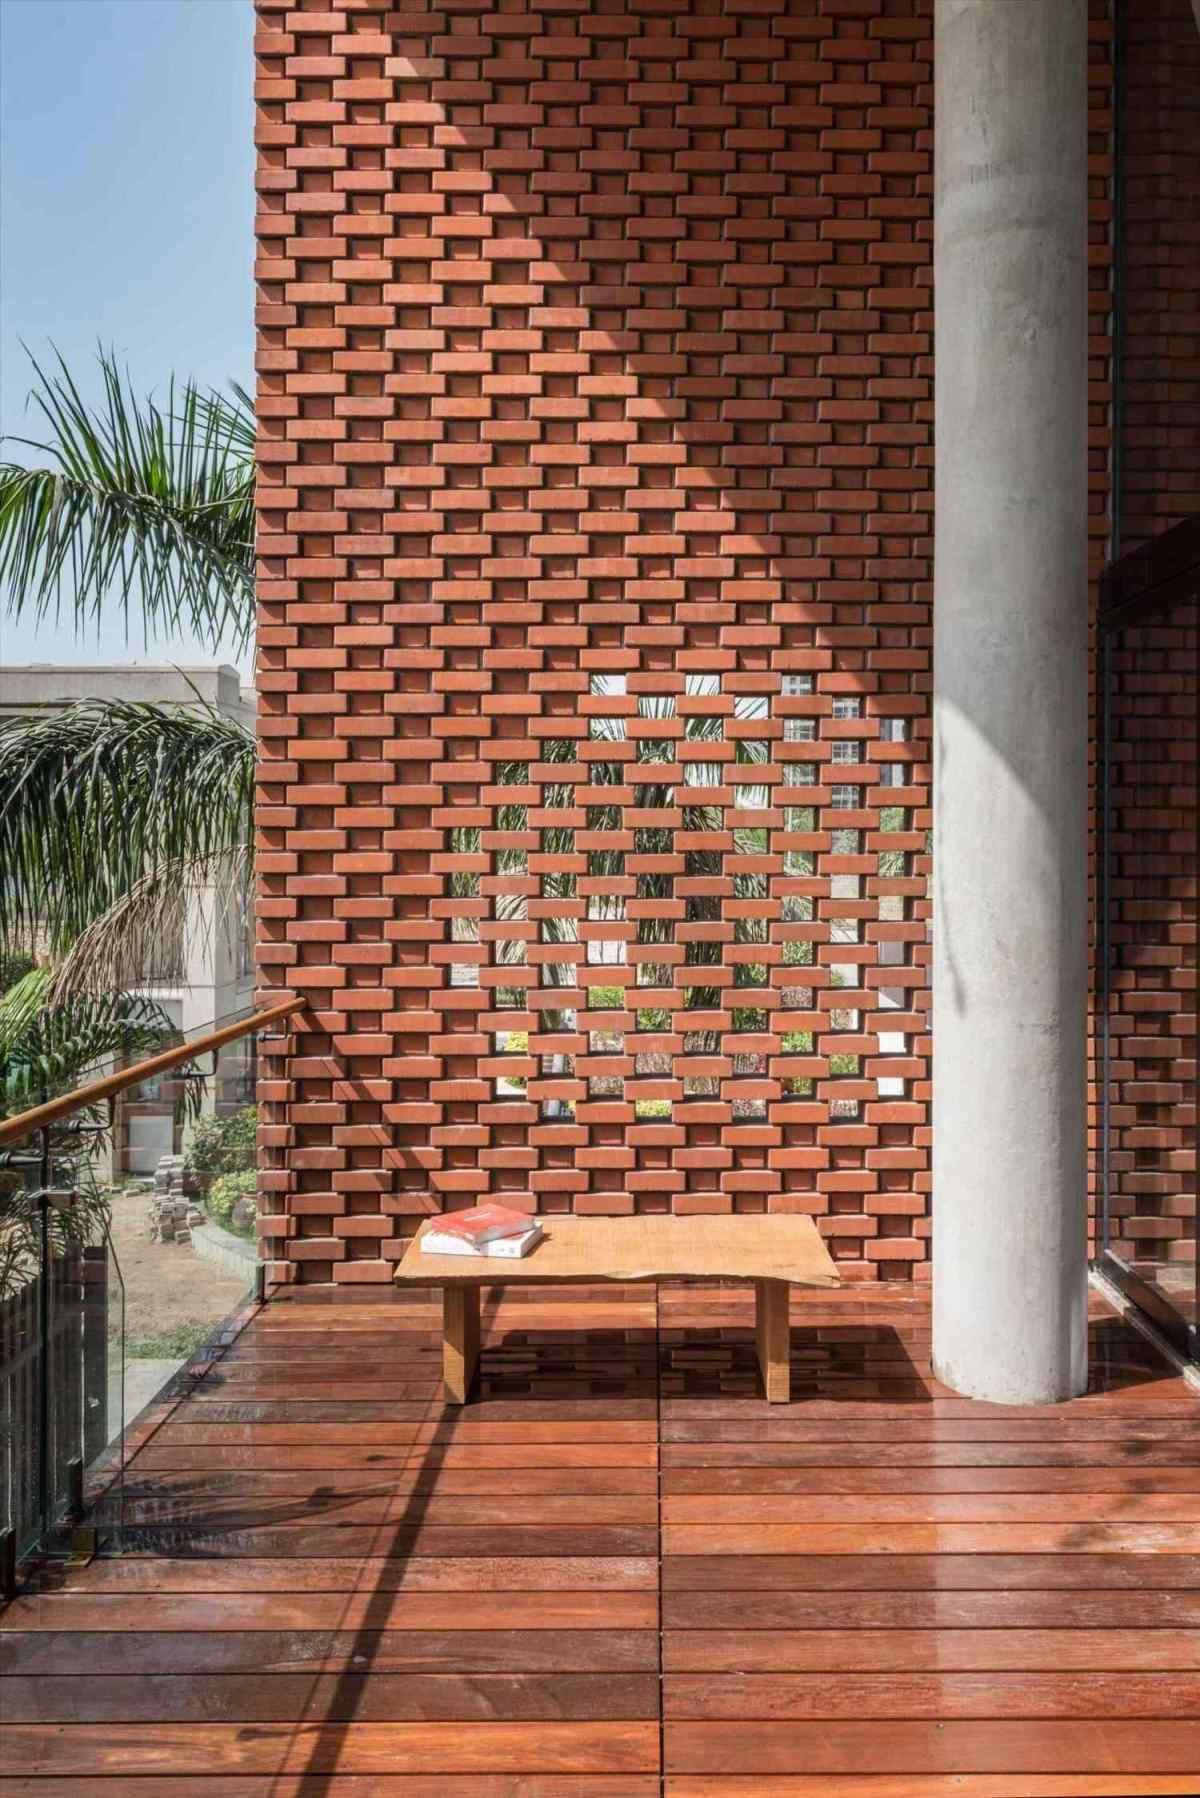 A Exterior Screen Wall Clever Take On Privacy Screens As Robert Frost Wrote Good Rhpinterestcom Close Up Of The Western Exterior Breakpr Facade House Brick Facade Facade Architecture